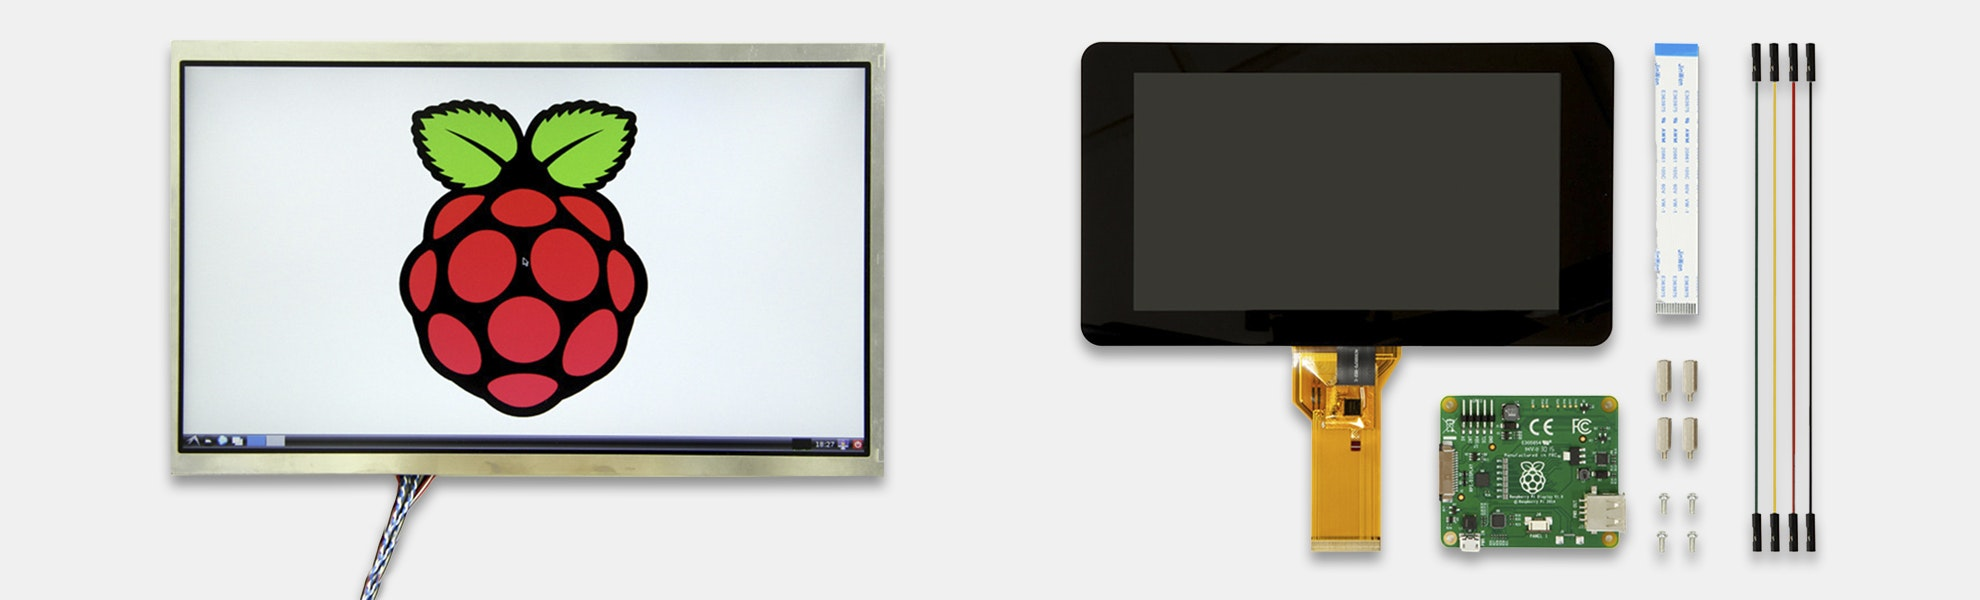 Seeed LCD Displays for Raspberry Pi